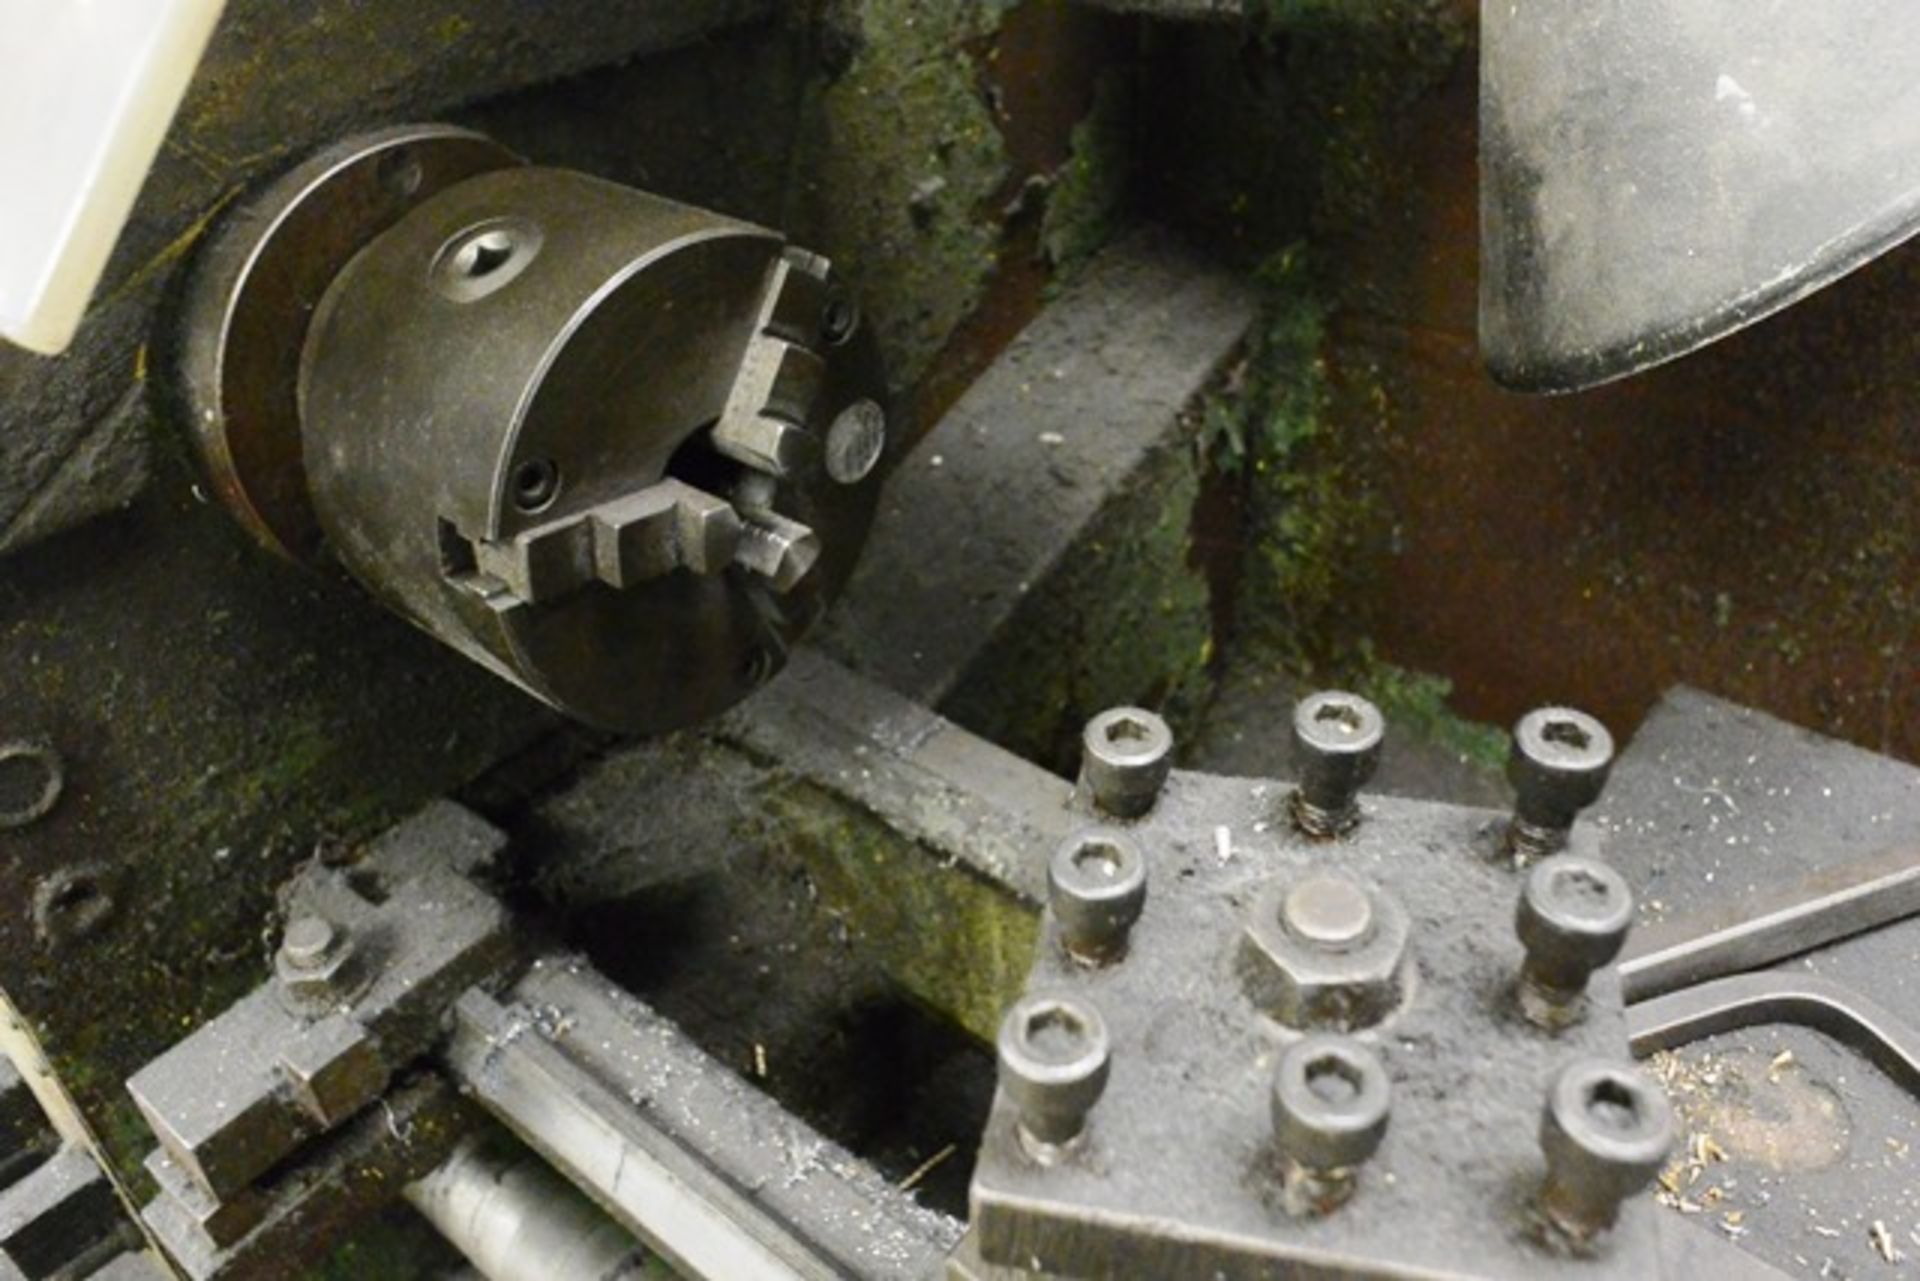 Boxford Industrial 11.30, centre lathe, model: Engineer, distance between centres 770mm, 3 jaw chuck - Image 2 of 4